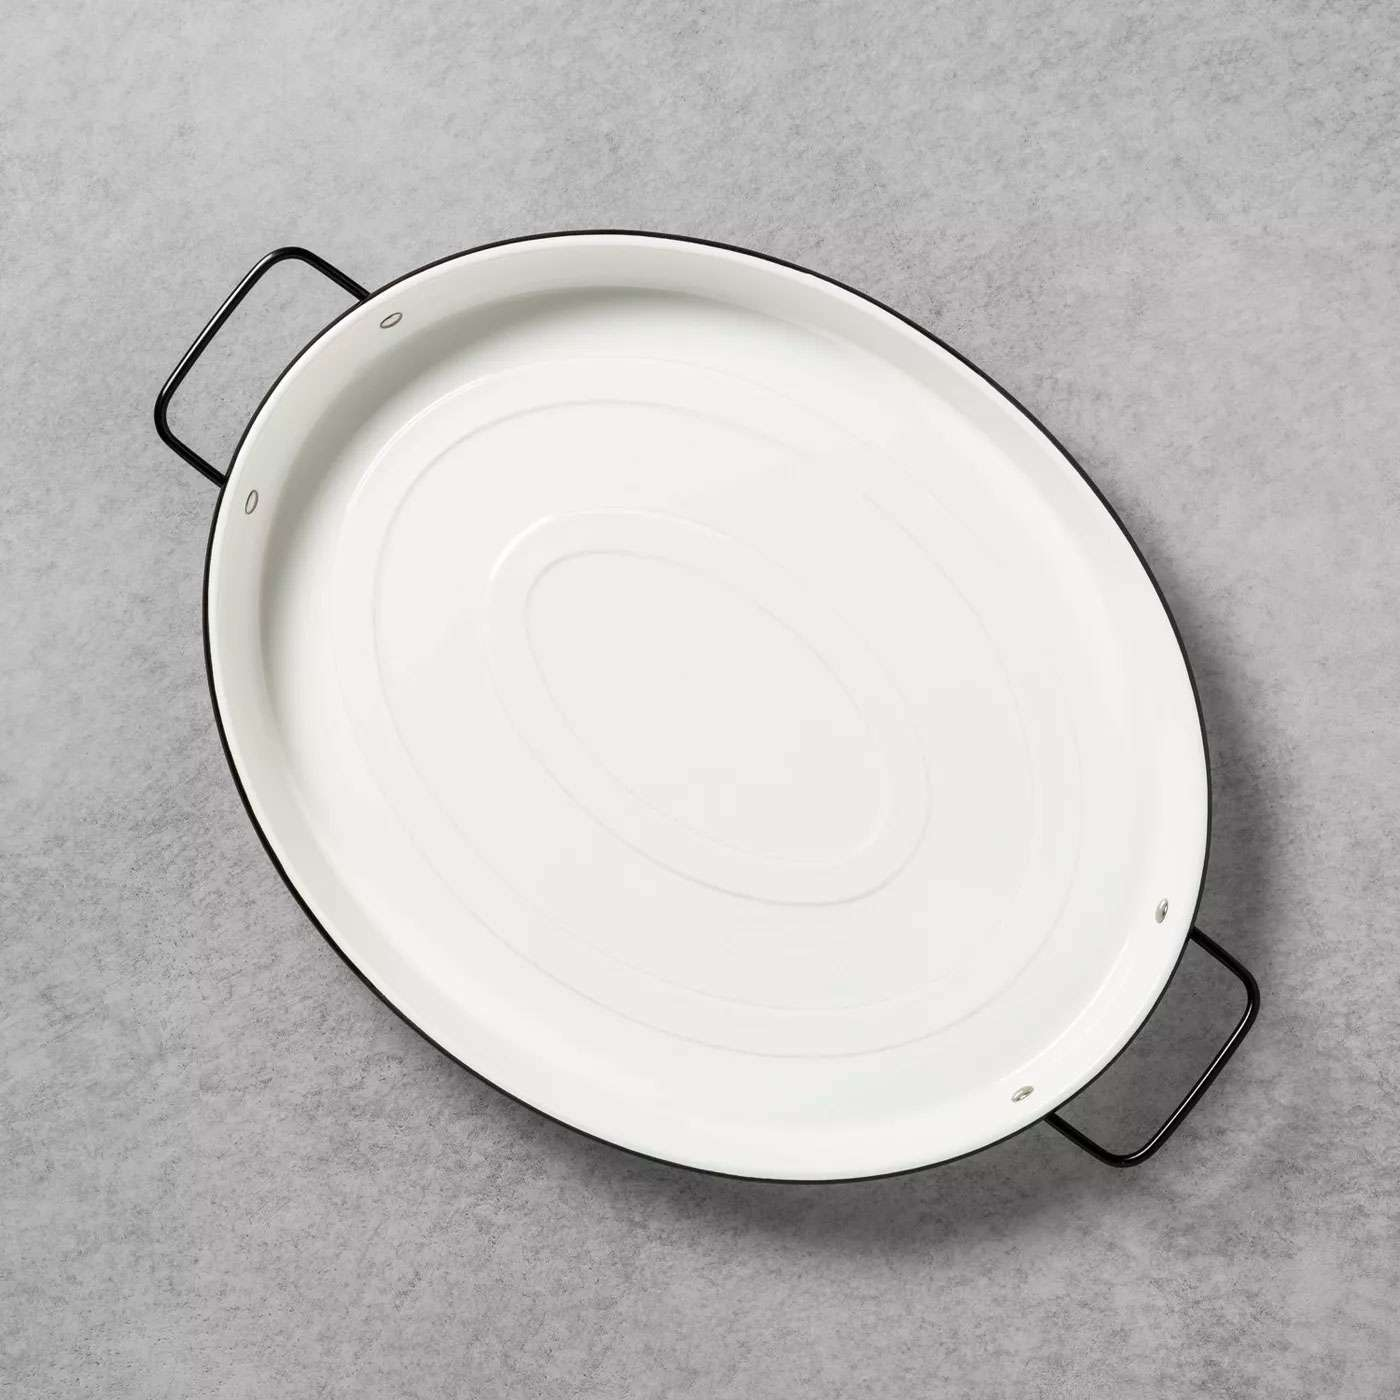 hearth and hand with magnolia oval enamelware serve tray